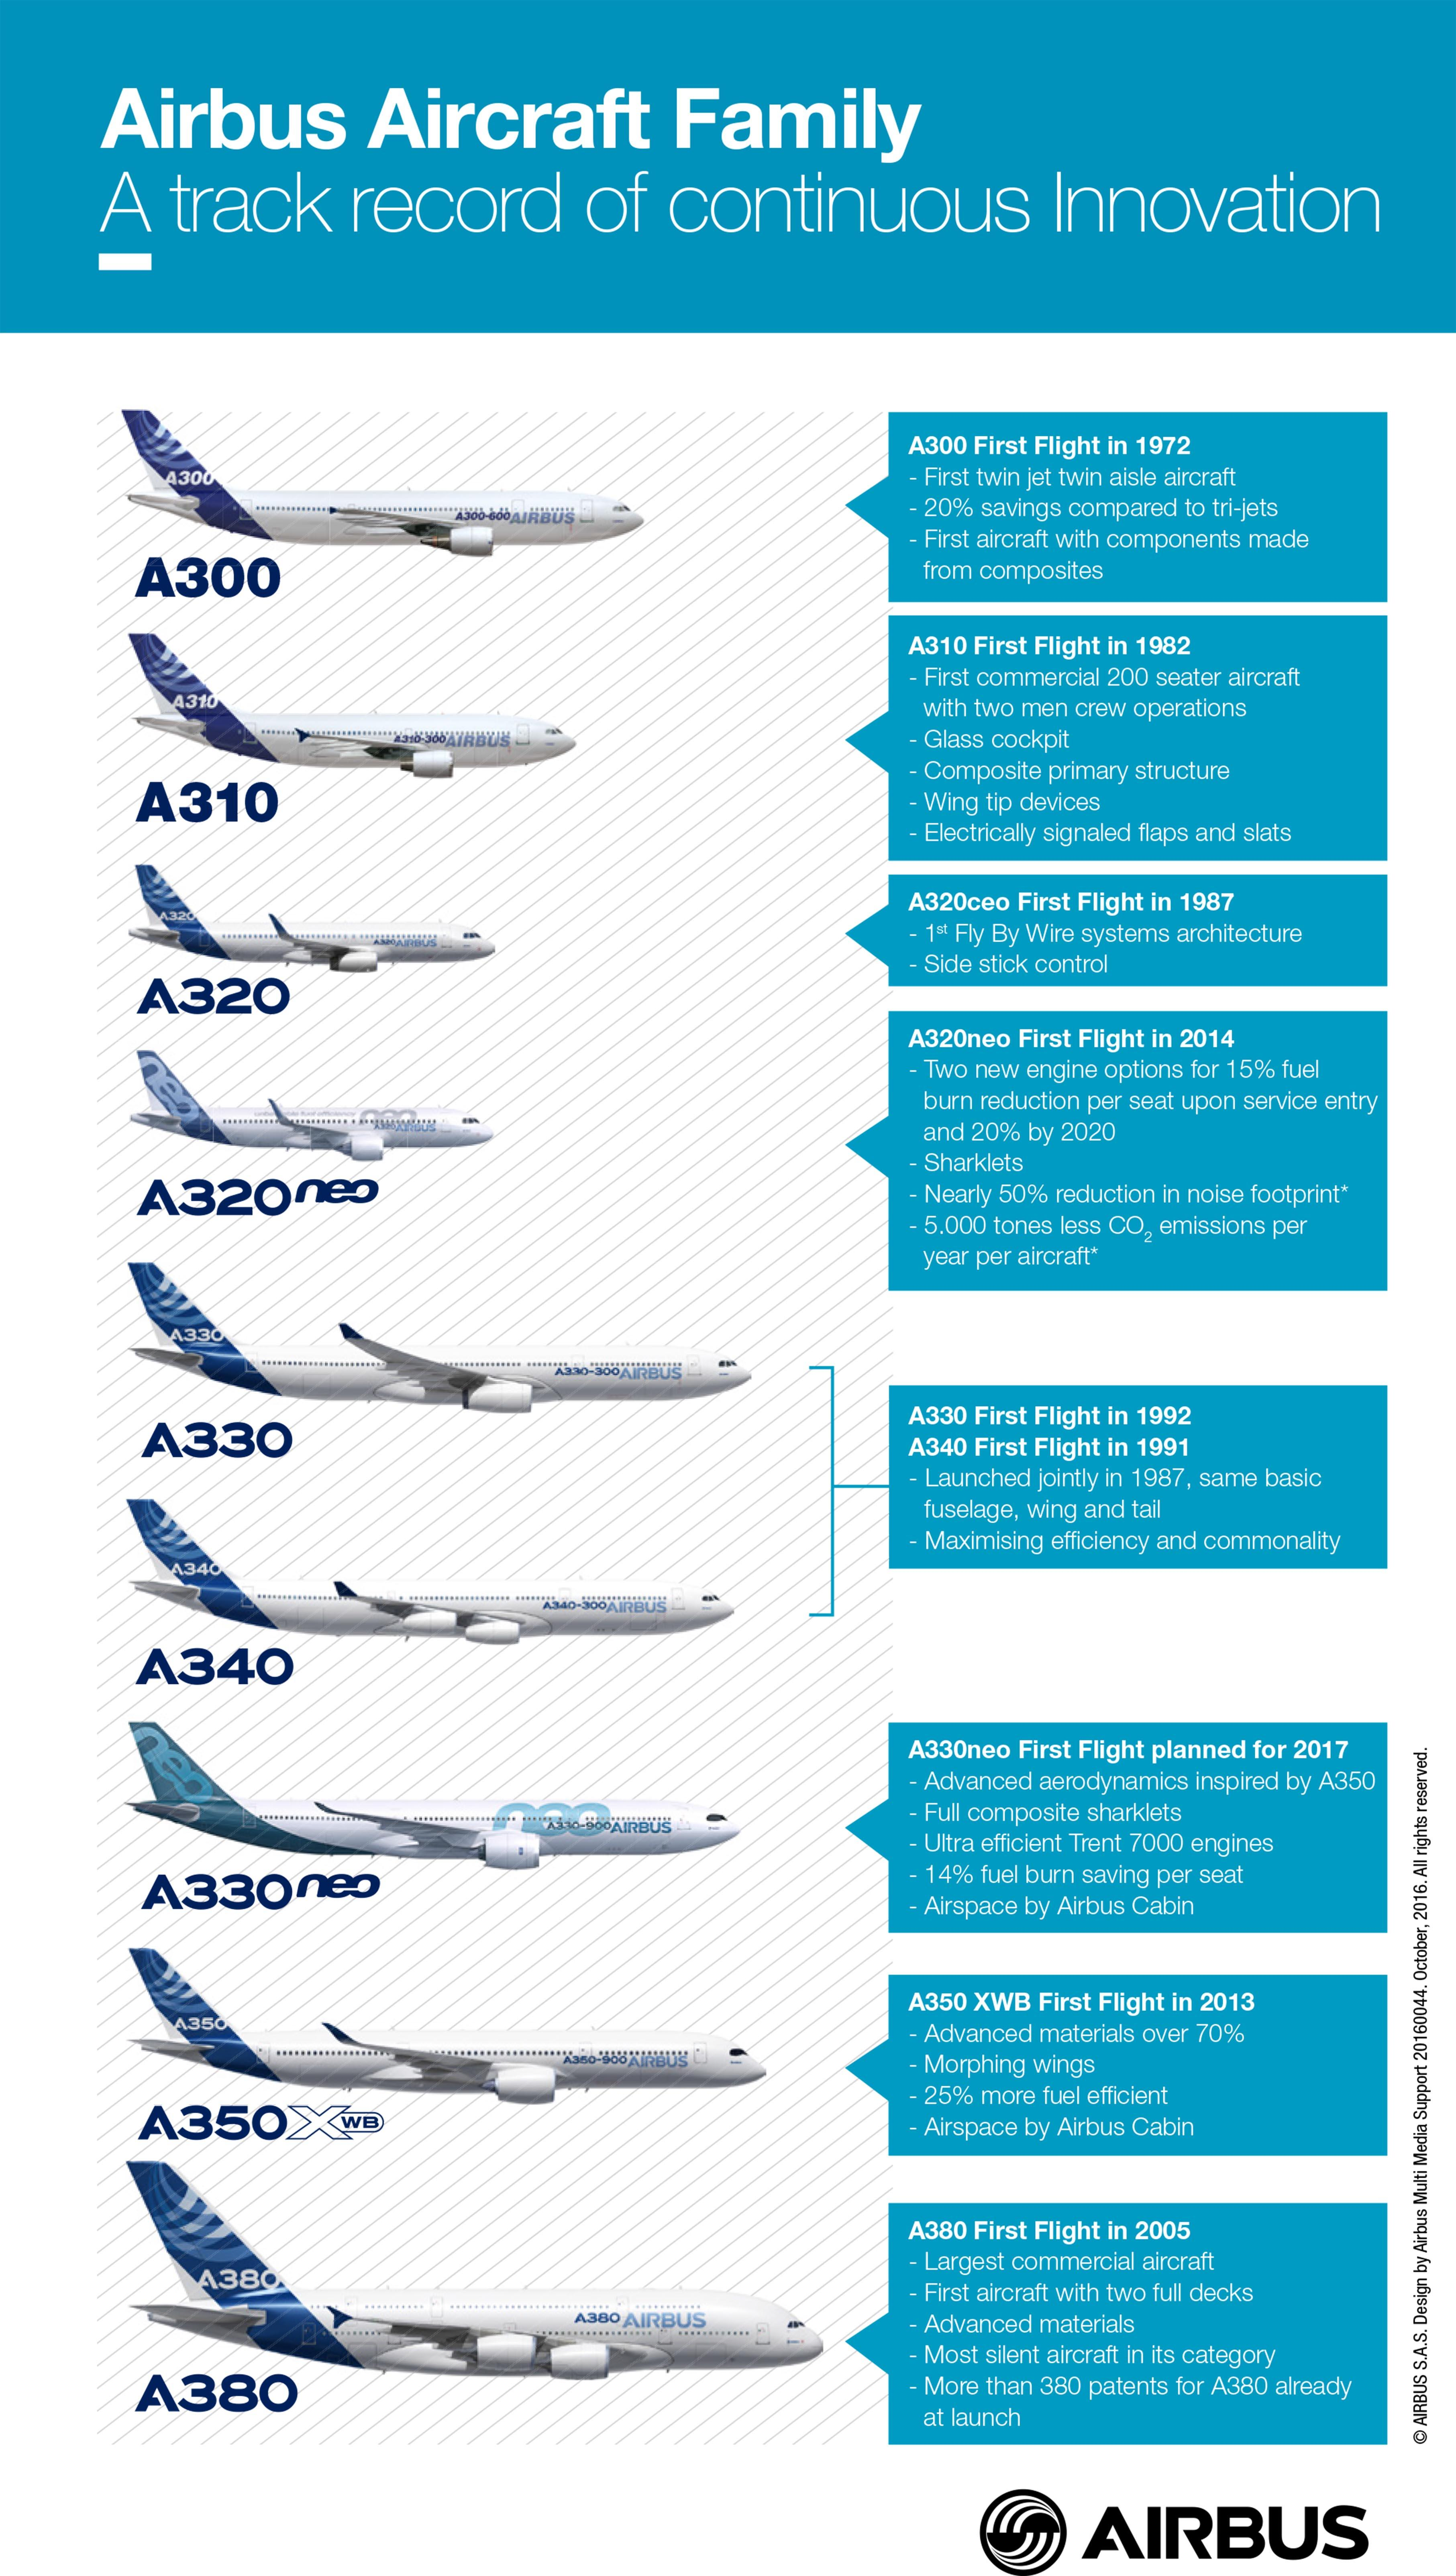 airbus_aircraft_family_continous_innovation_infographics_oct_2016